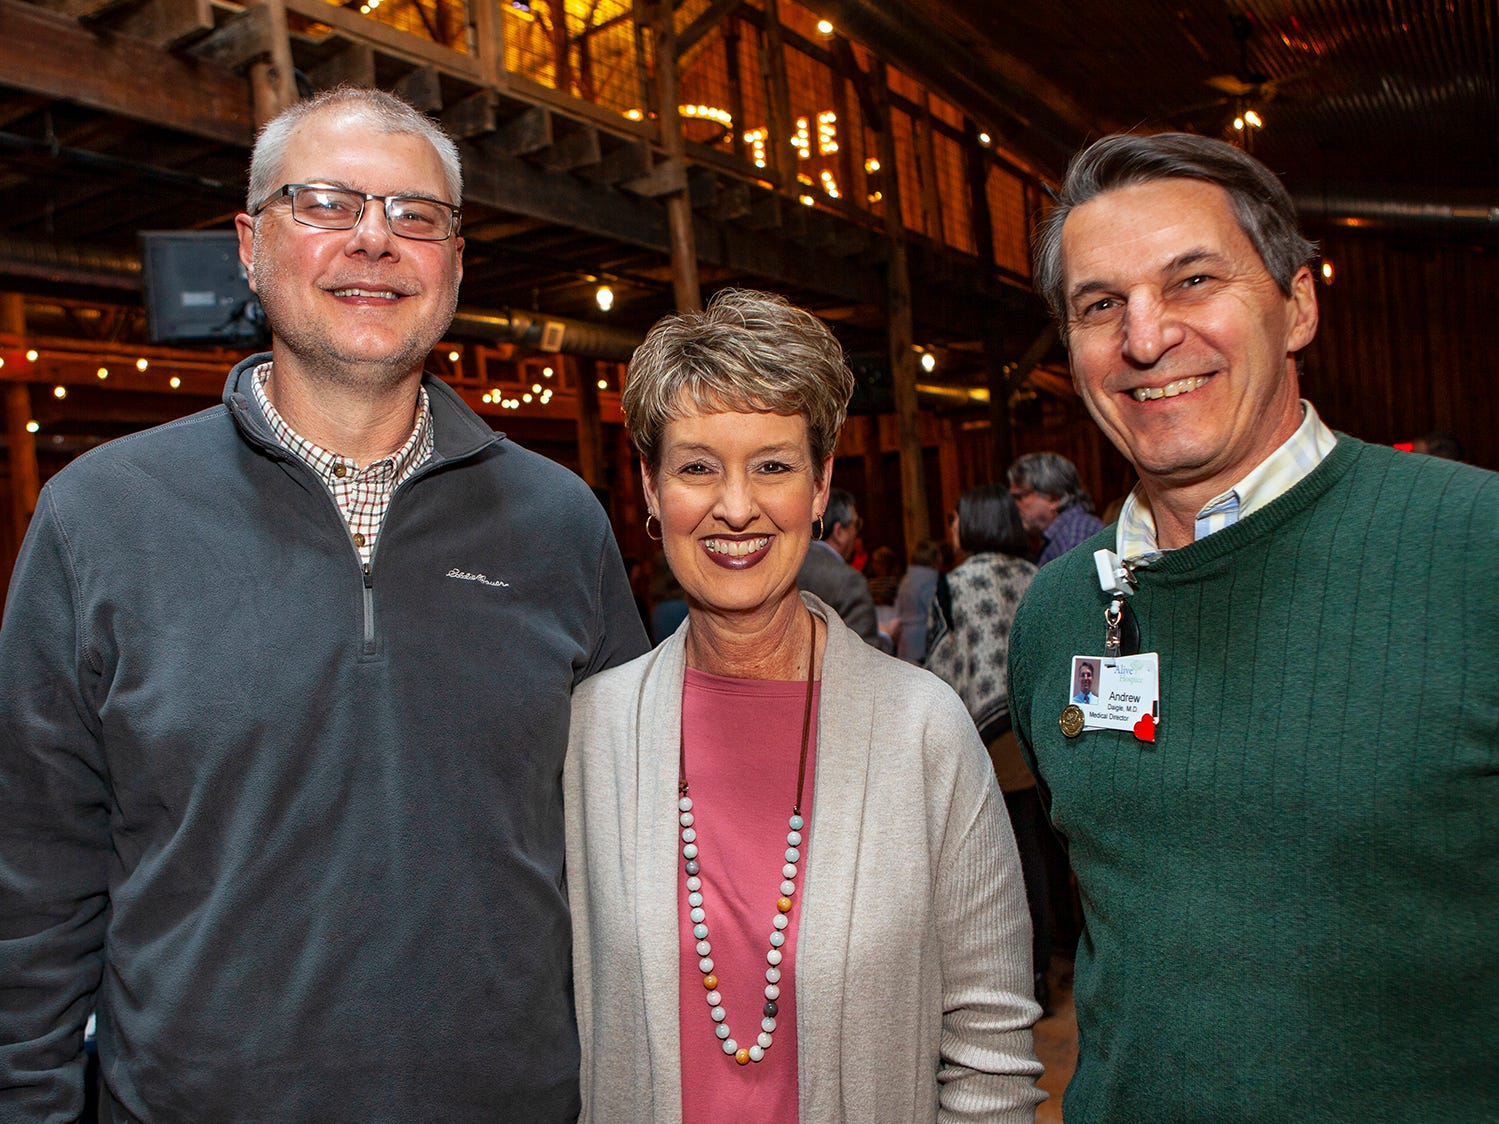 Jason and Jennifer Walker with Dr. Andrew Daigle at the second night of Bluebird in the Boro, held March 4-6, 2019. A benefit for Alive Hospice, the event was held at The Grove at Williamson Place in Murfreesboro.